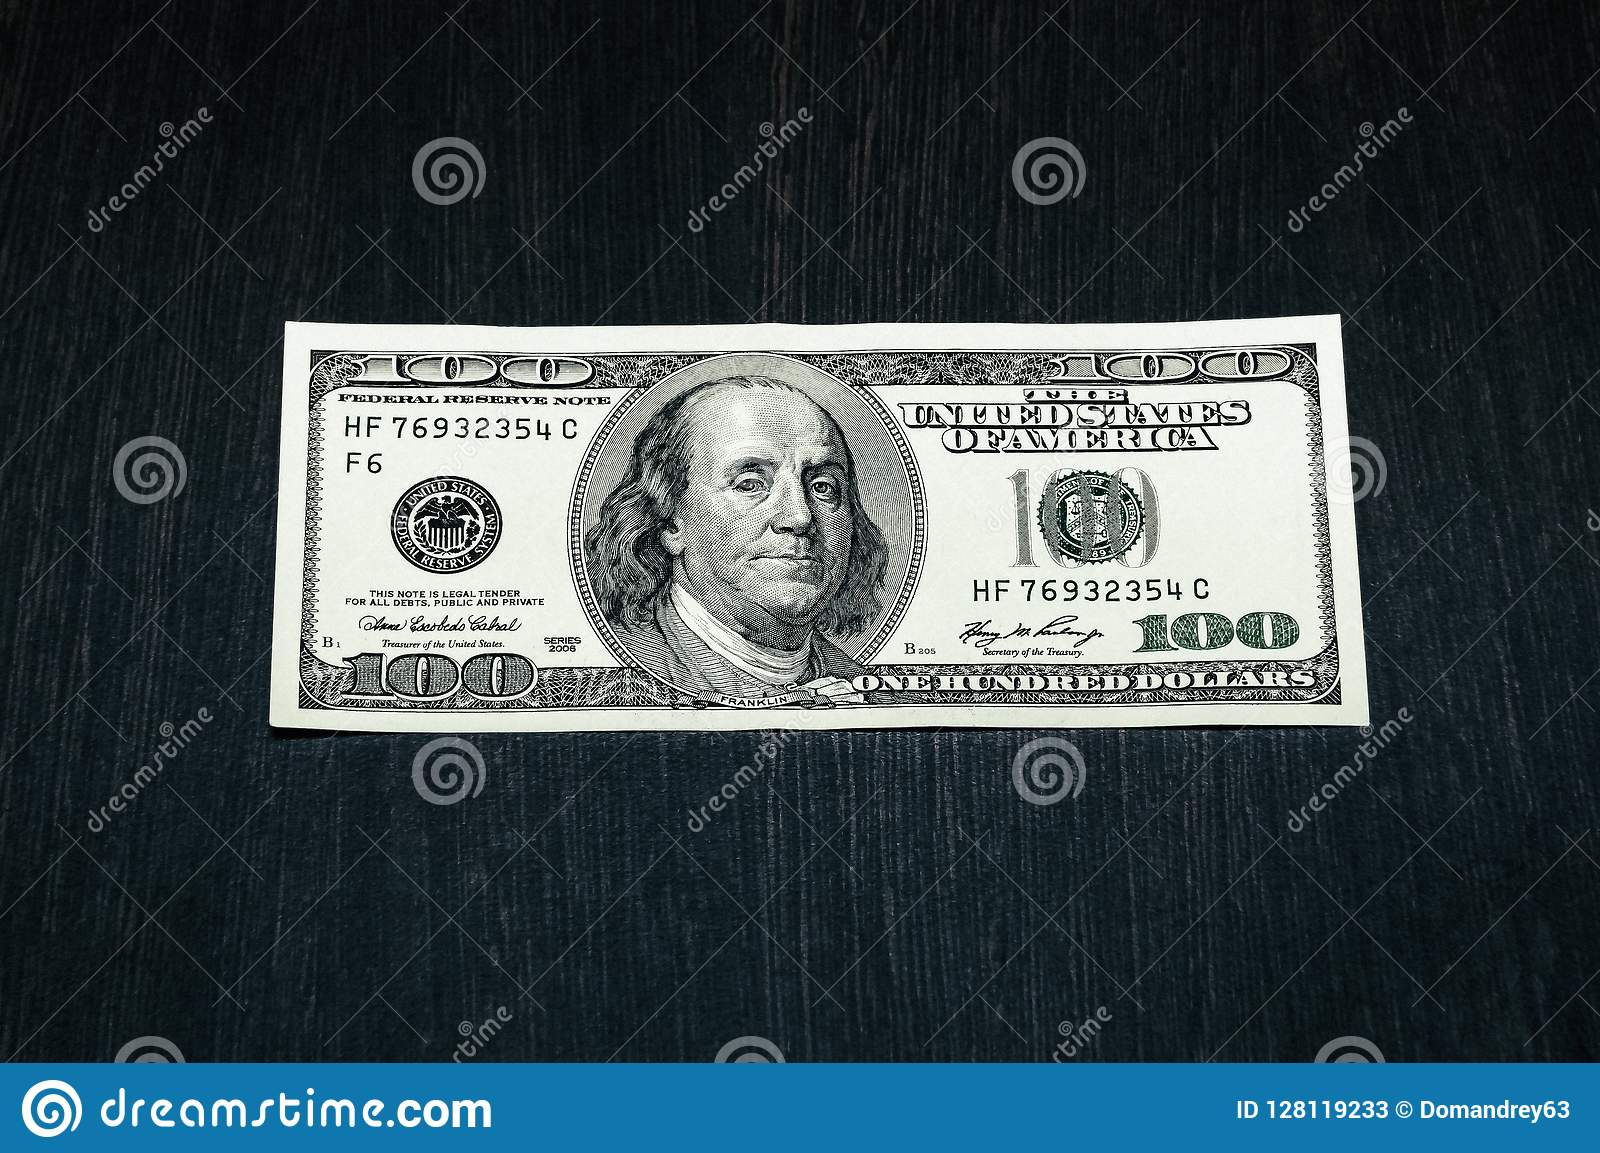 A Hundred Dollar Bill On A Table Made Of Dark Textured Wood